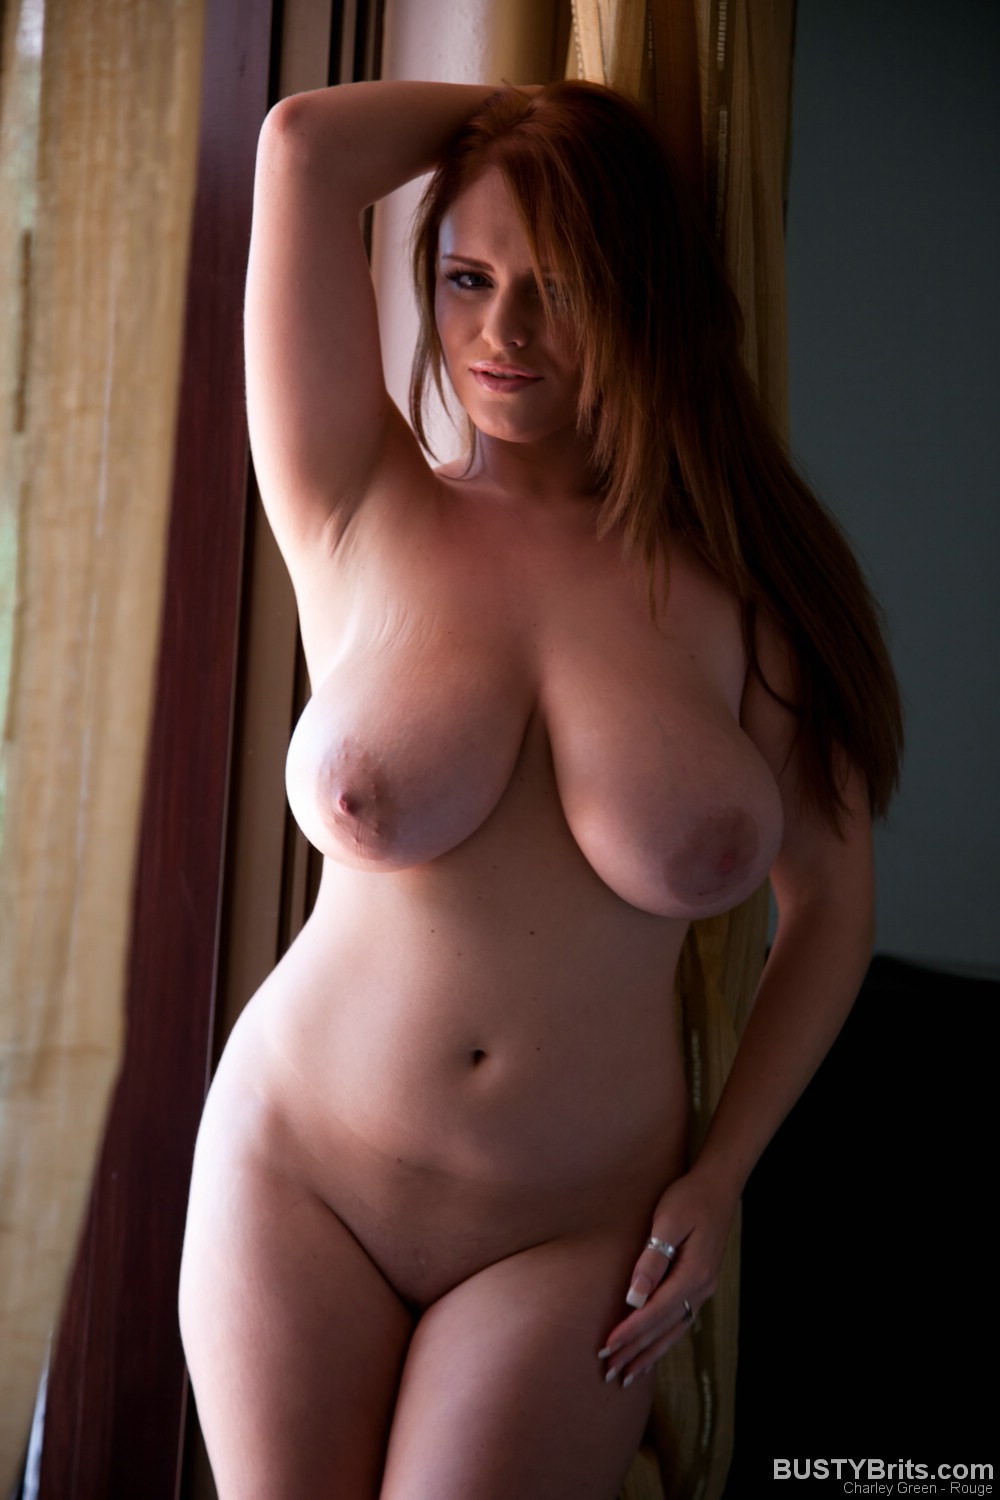 vids-young-nude-busty-british